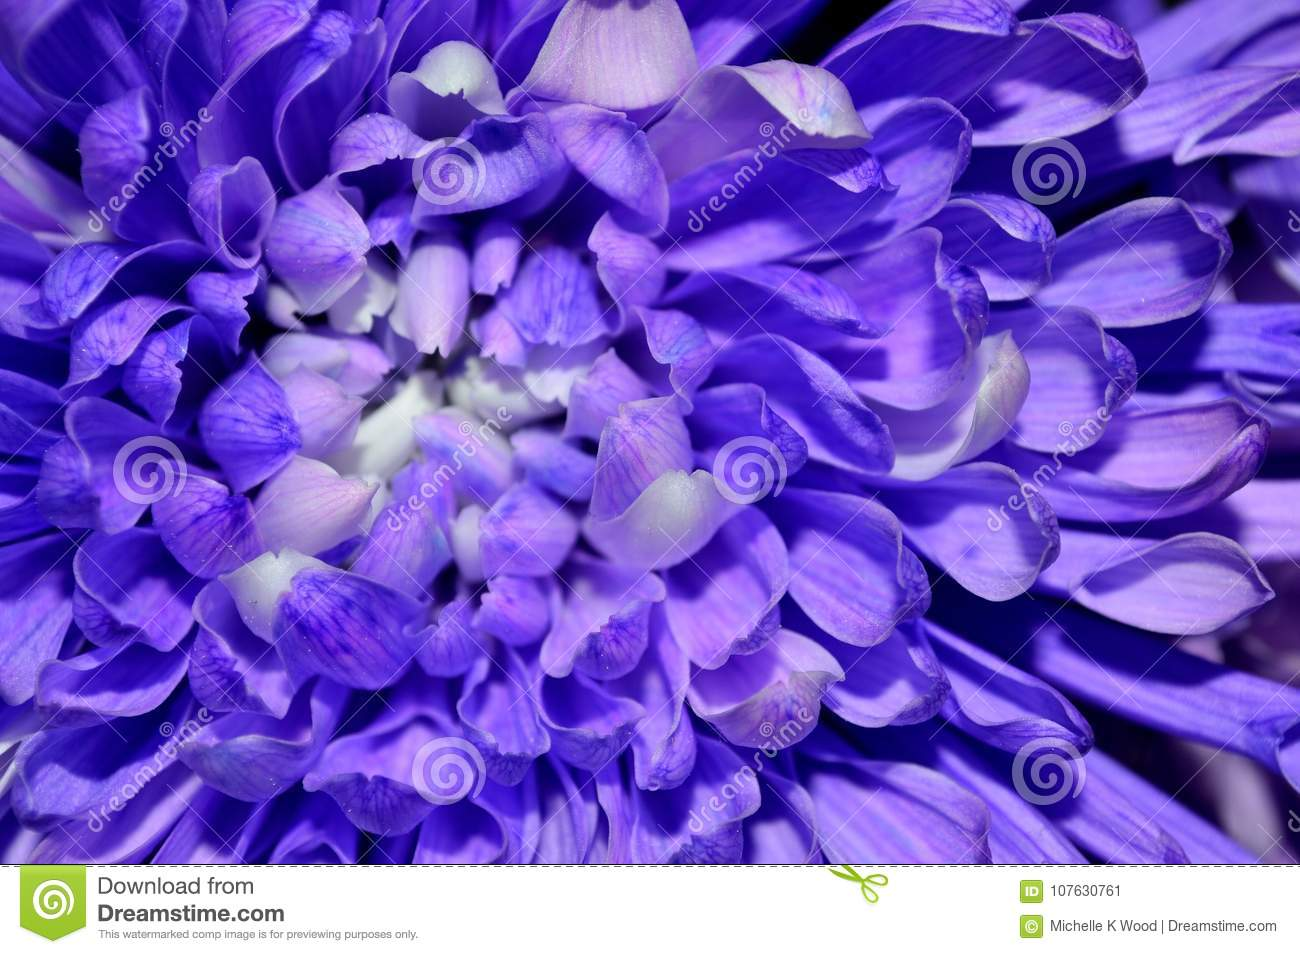 Macro purple and white dahlia